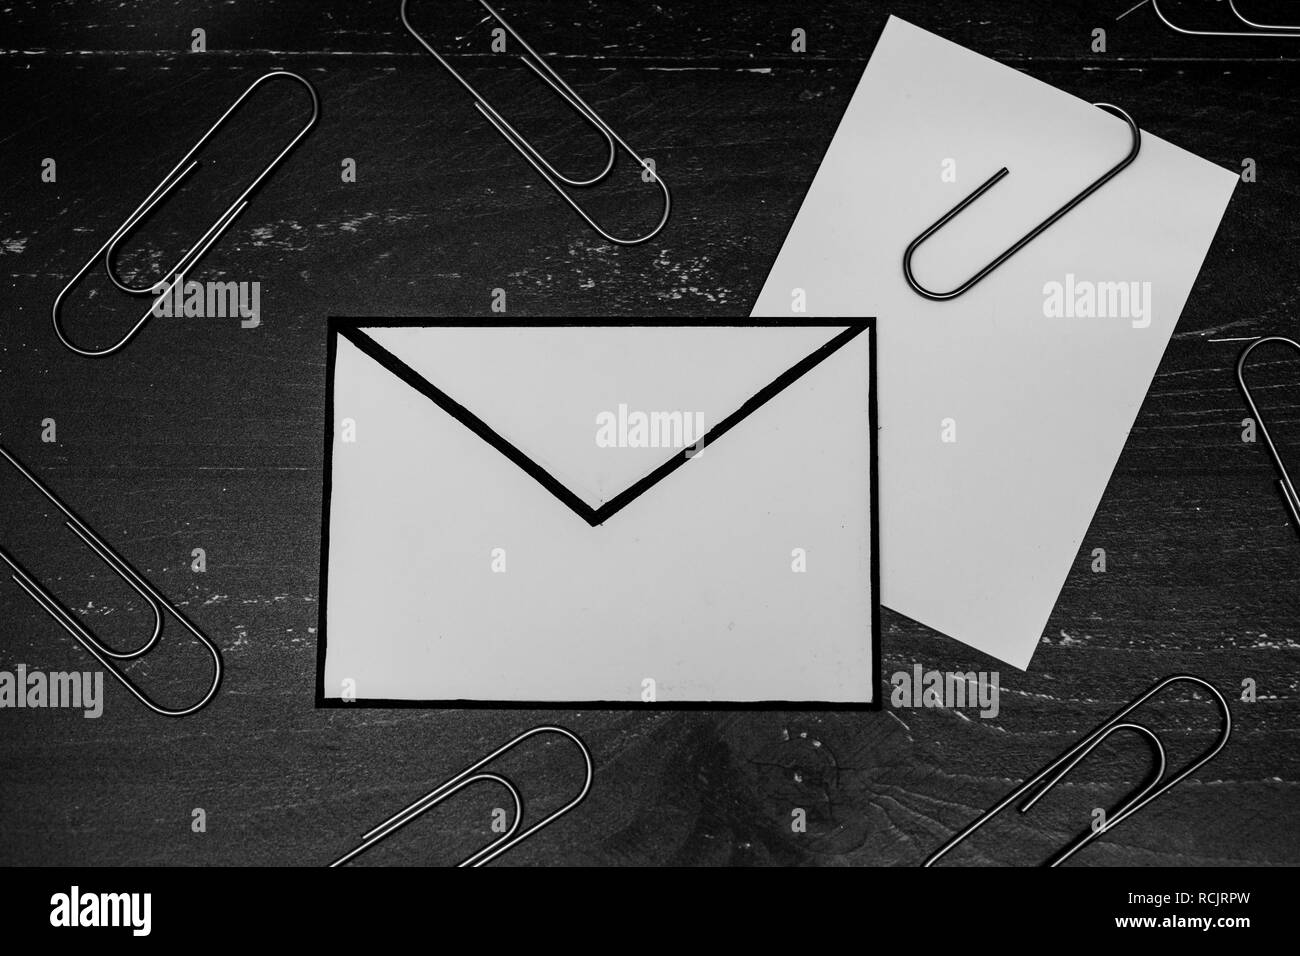 funny metaphor of inbox with email envelop and attachment clip on real-life desk, flatlay shot from topdown perspective - Stock Image